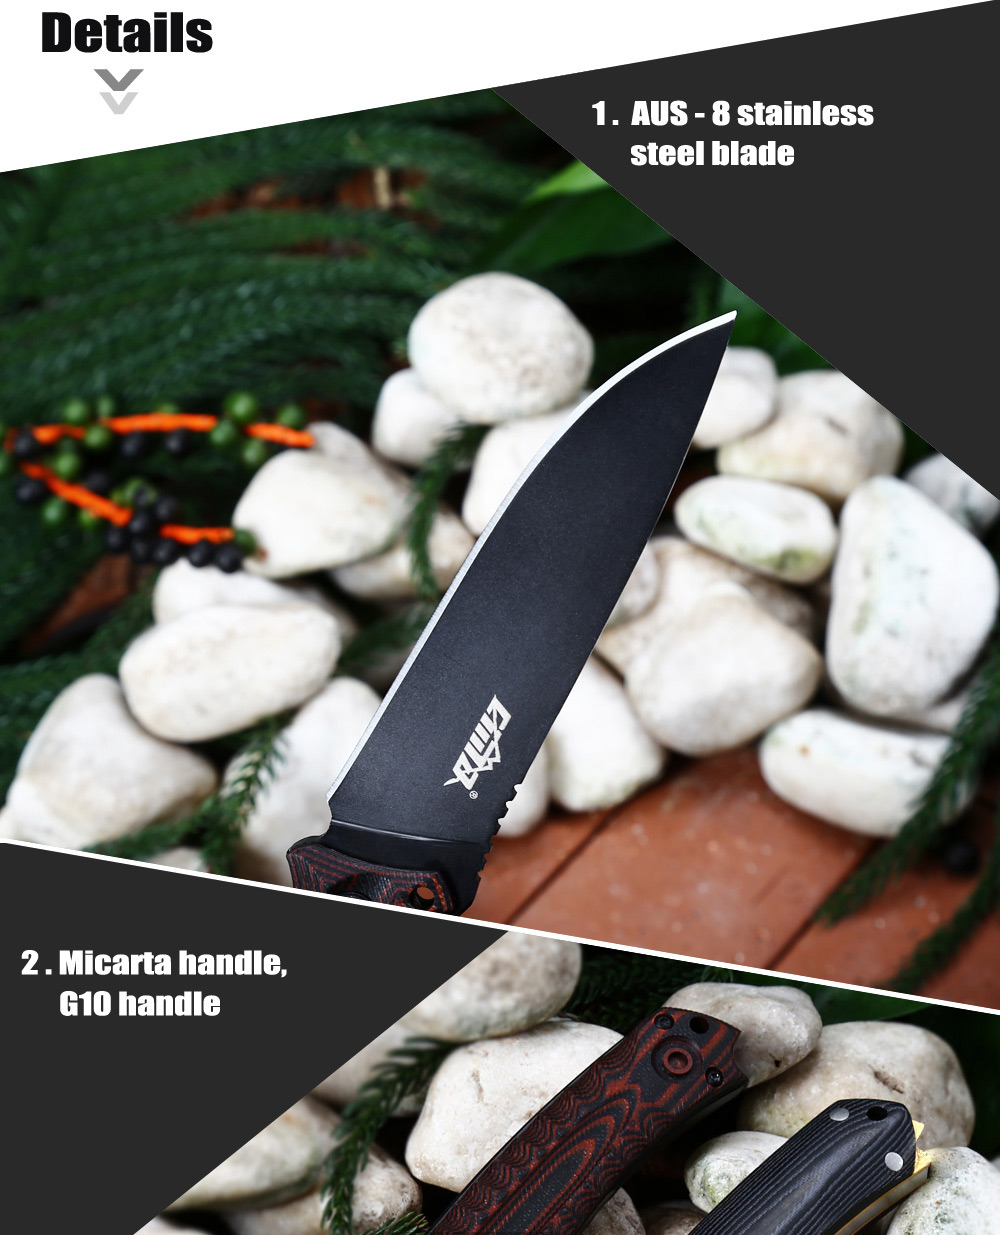 CIMA G20 AUS - 8 Stainless Steel Fixed Blade Knife with G10 Handle